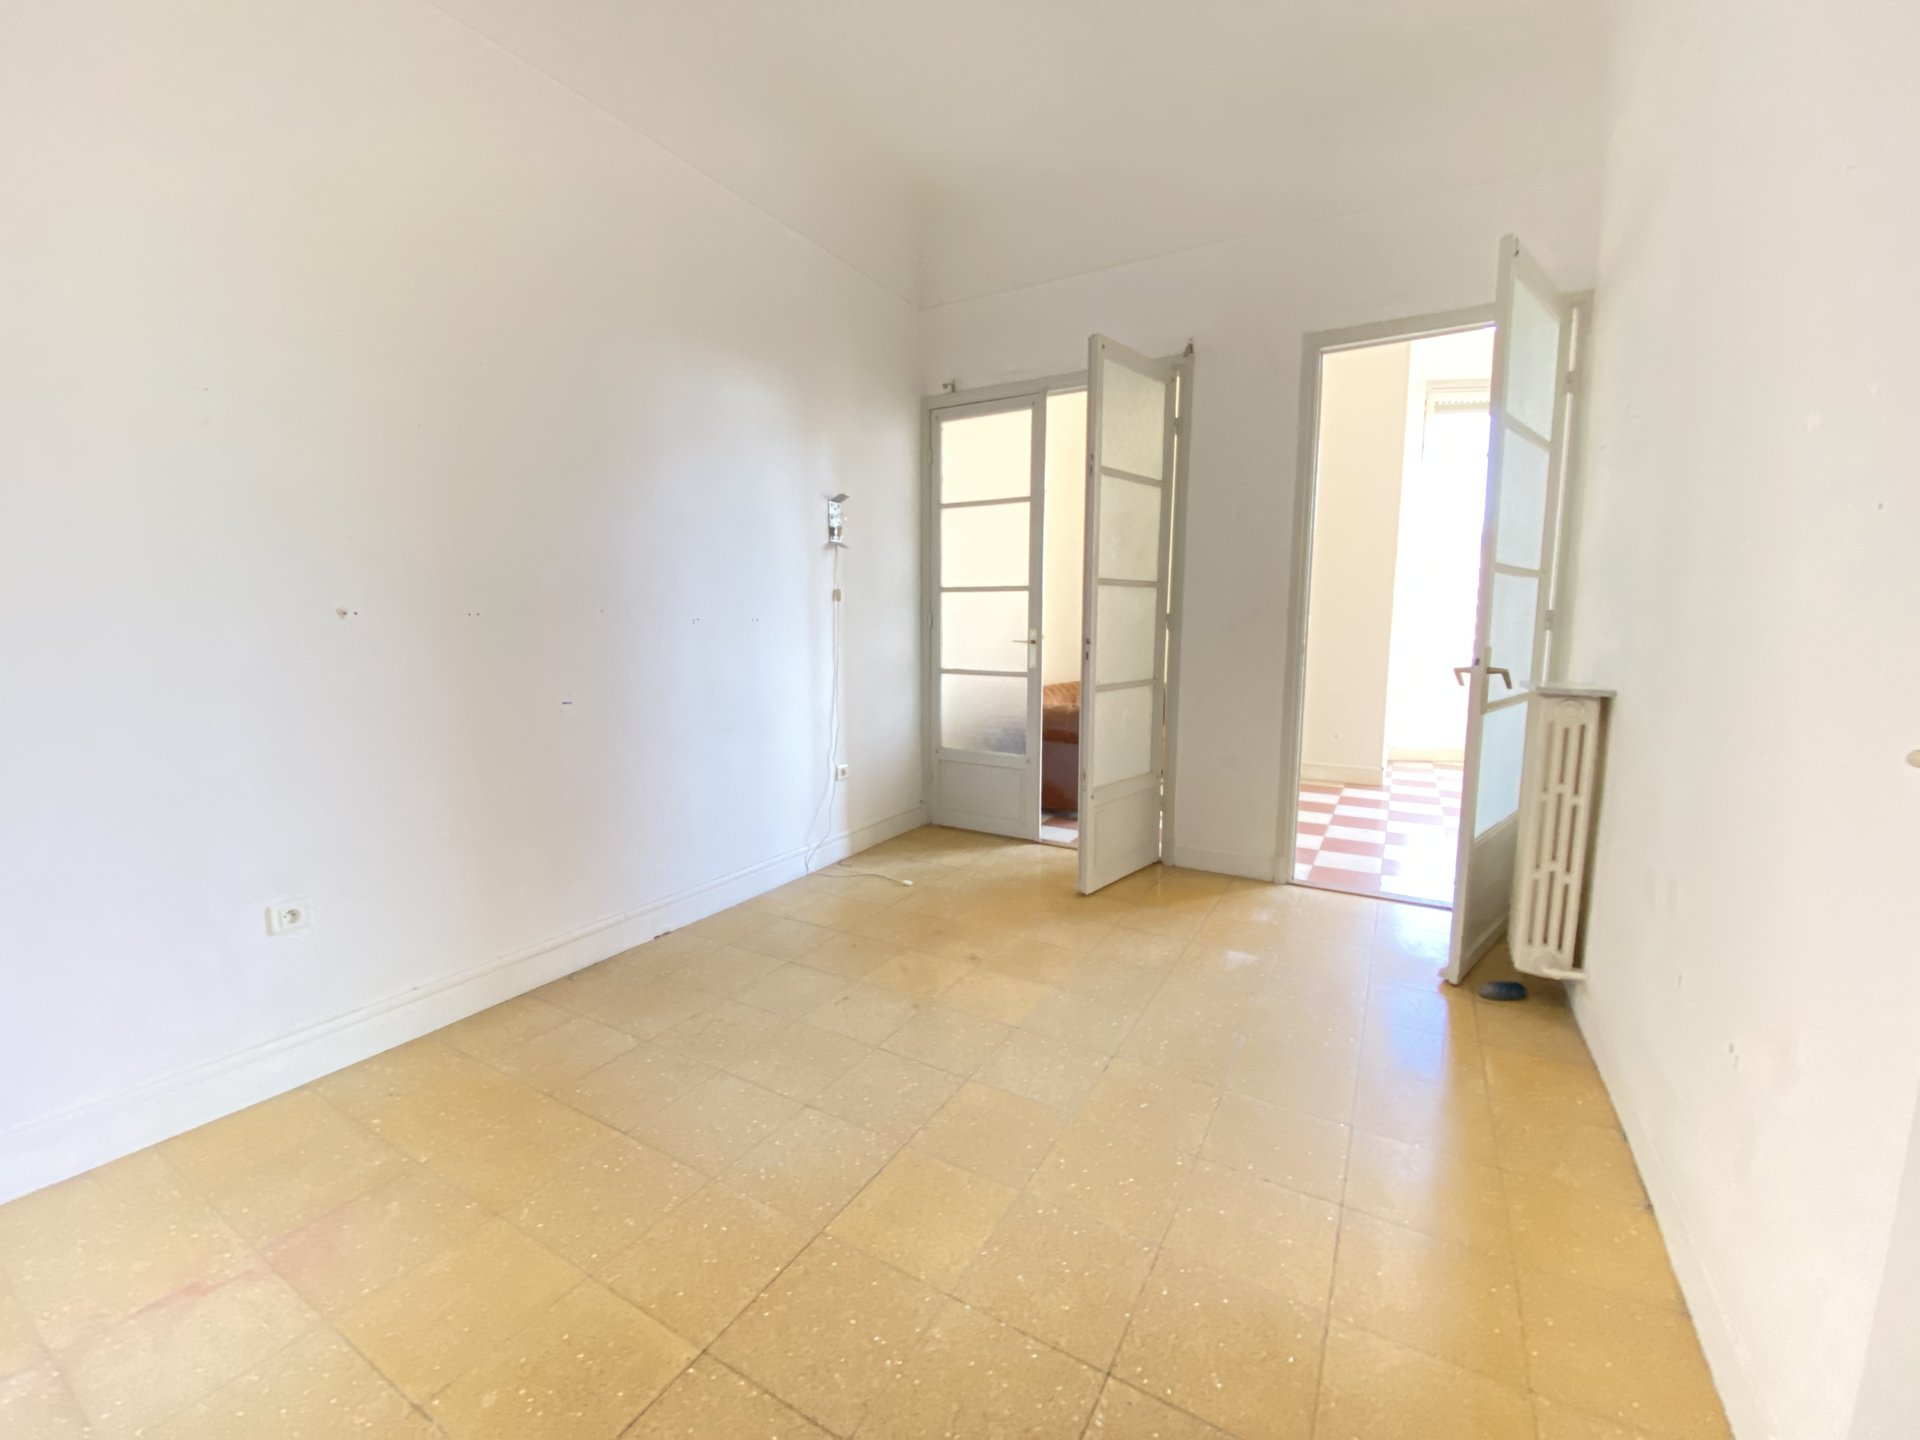 Appartement type bourgeois à Menton